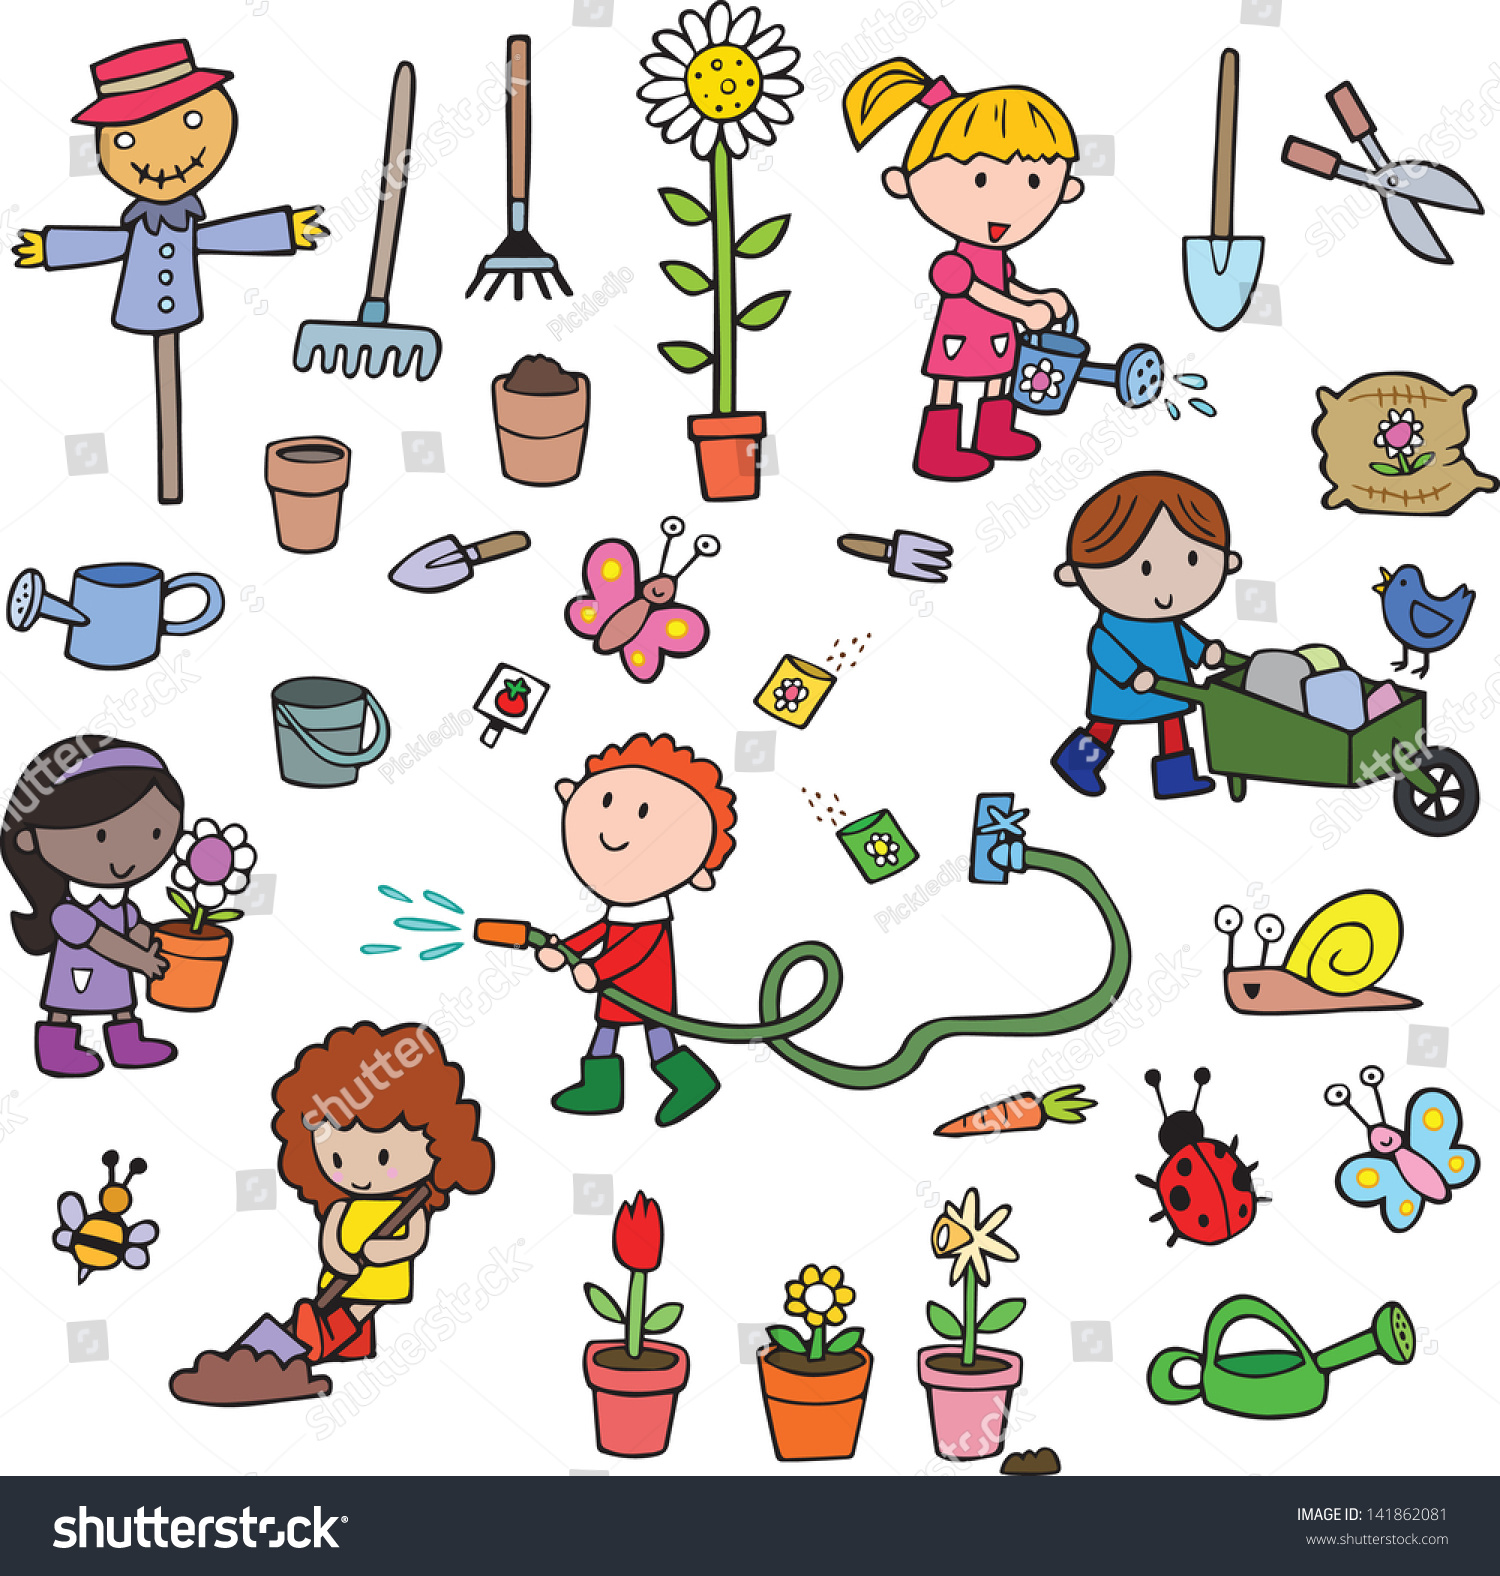 Cute Cartoon Gardening Children Eco Collection Stock